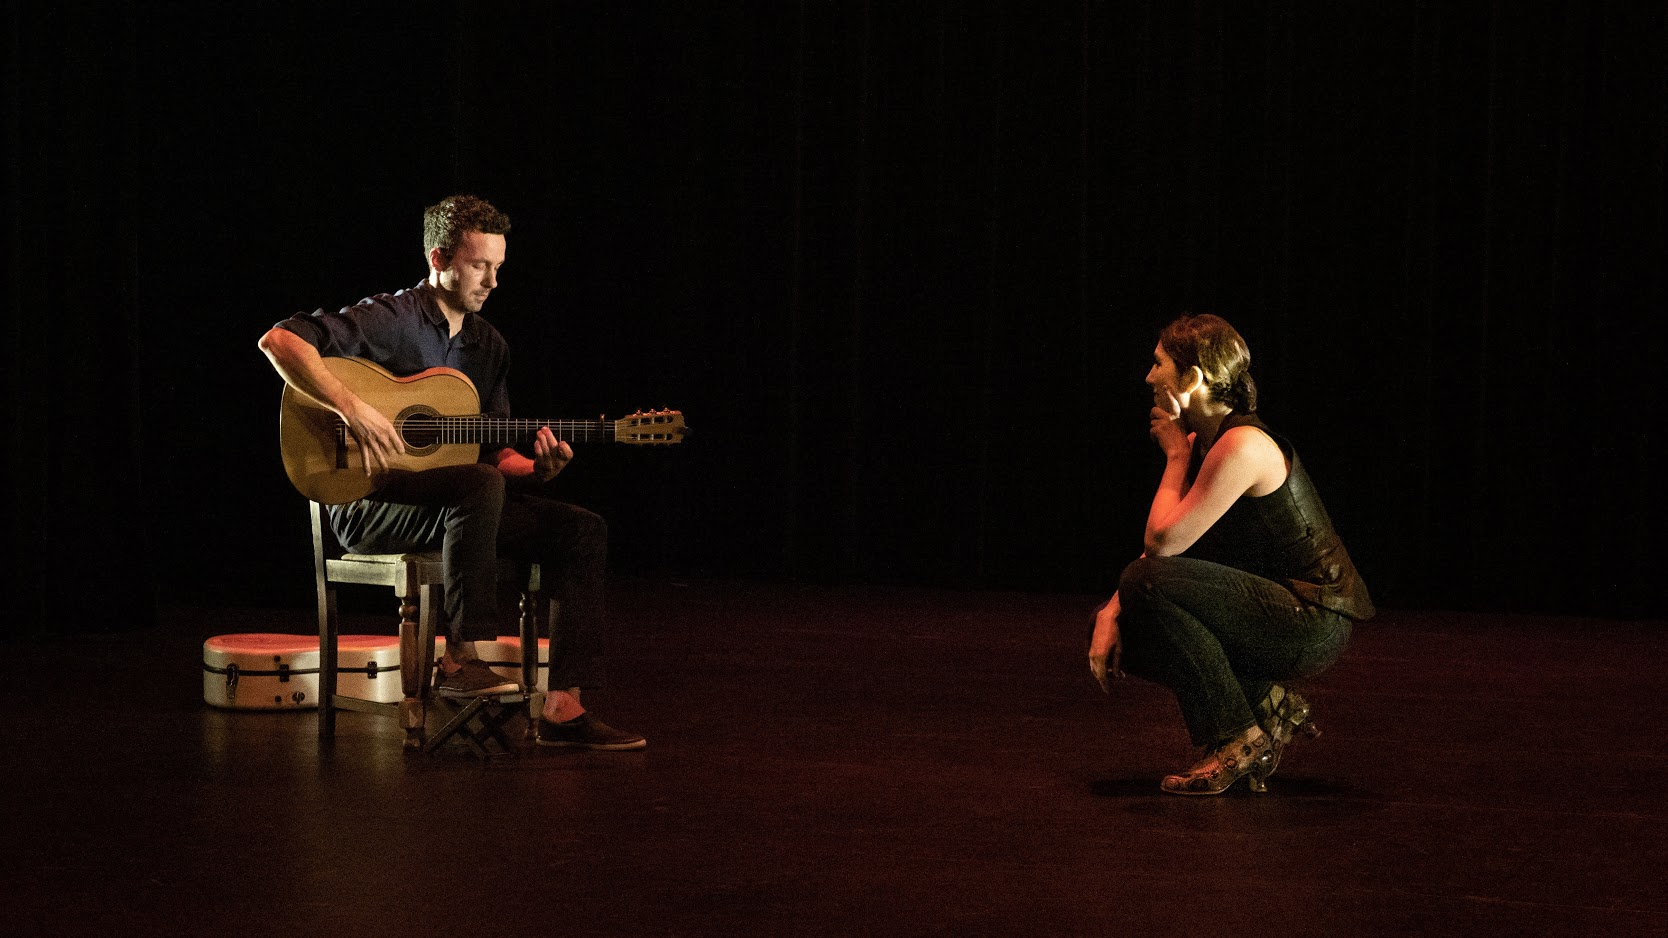 Dancer Maria Osende crouches down on stage and watches dan macneil play flamenco guitar